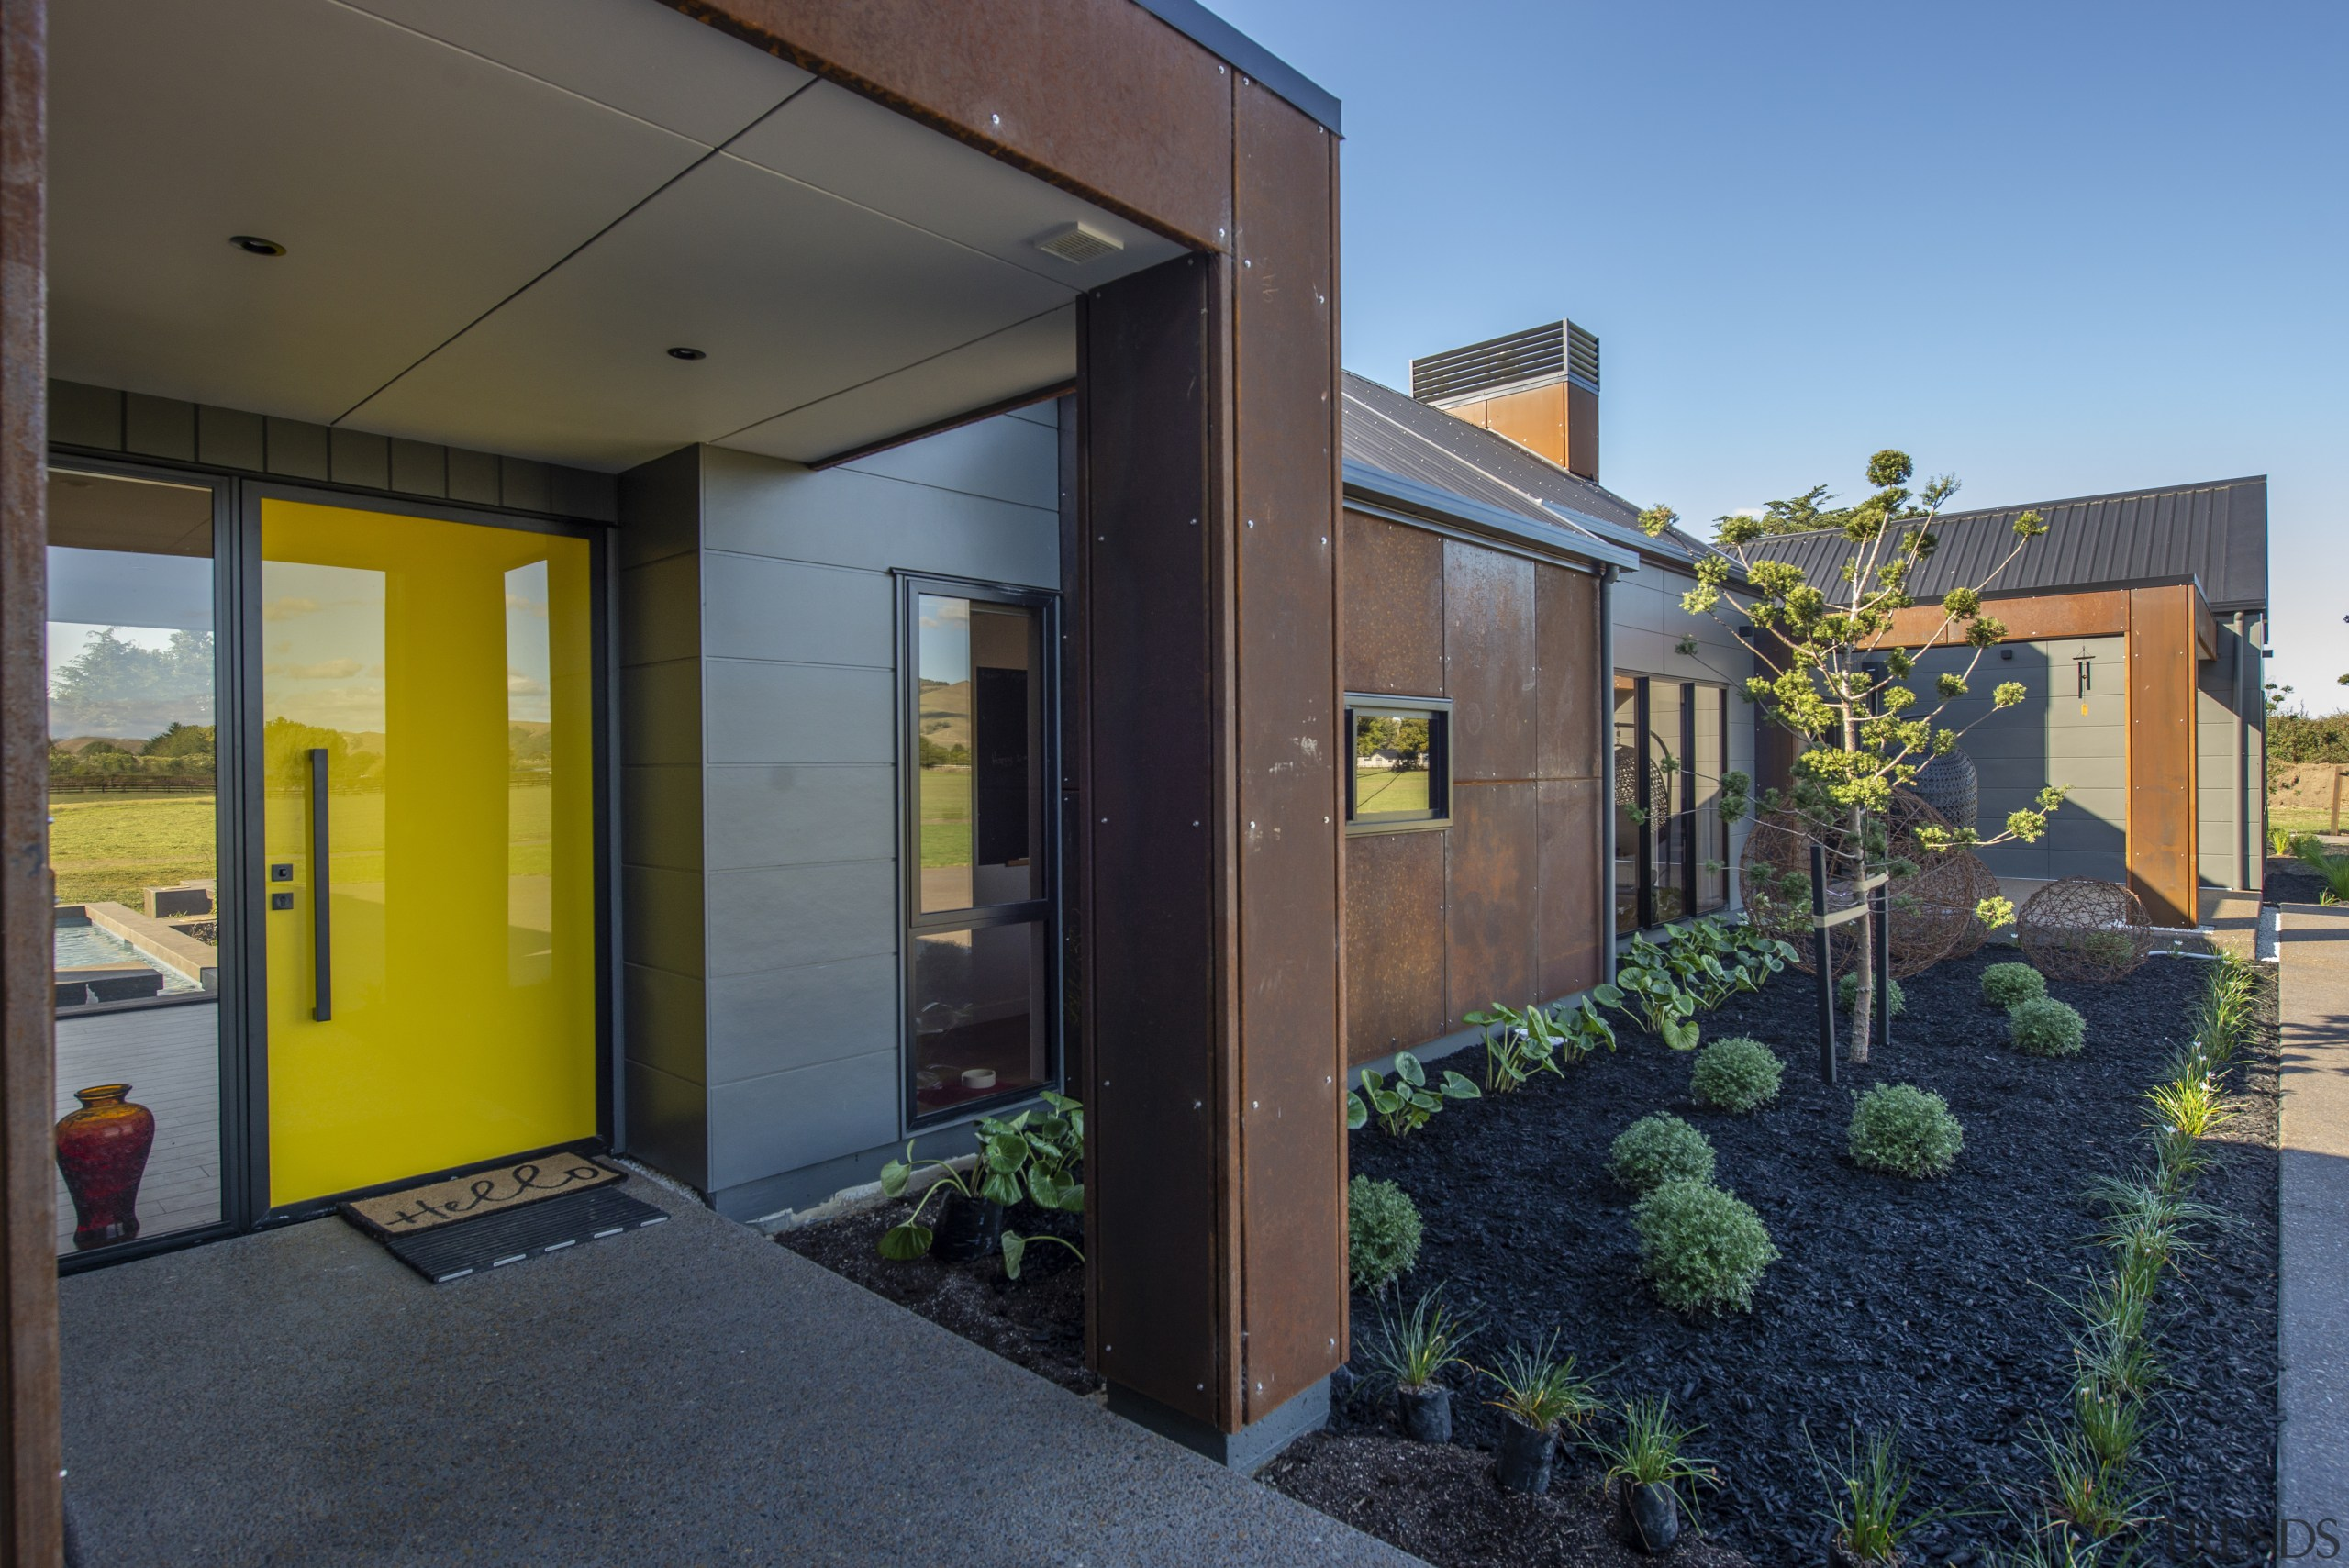 Corten steel panel cladding is a feature of black